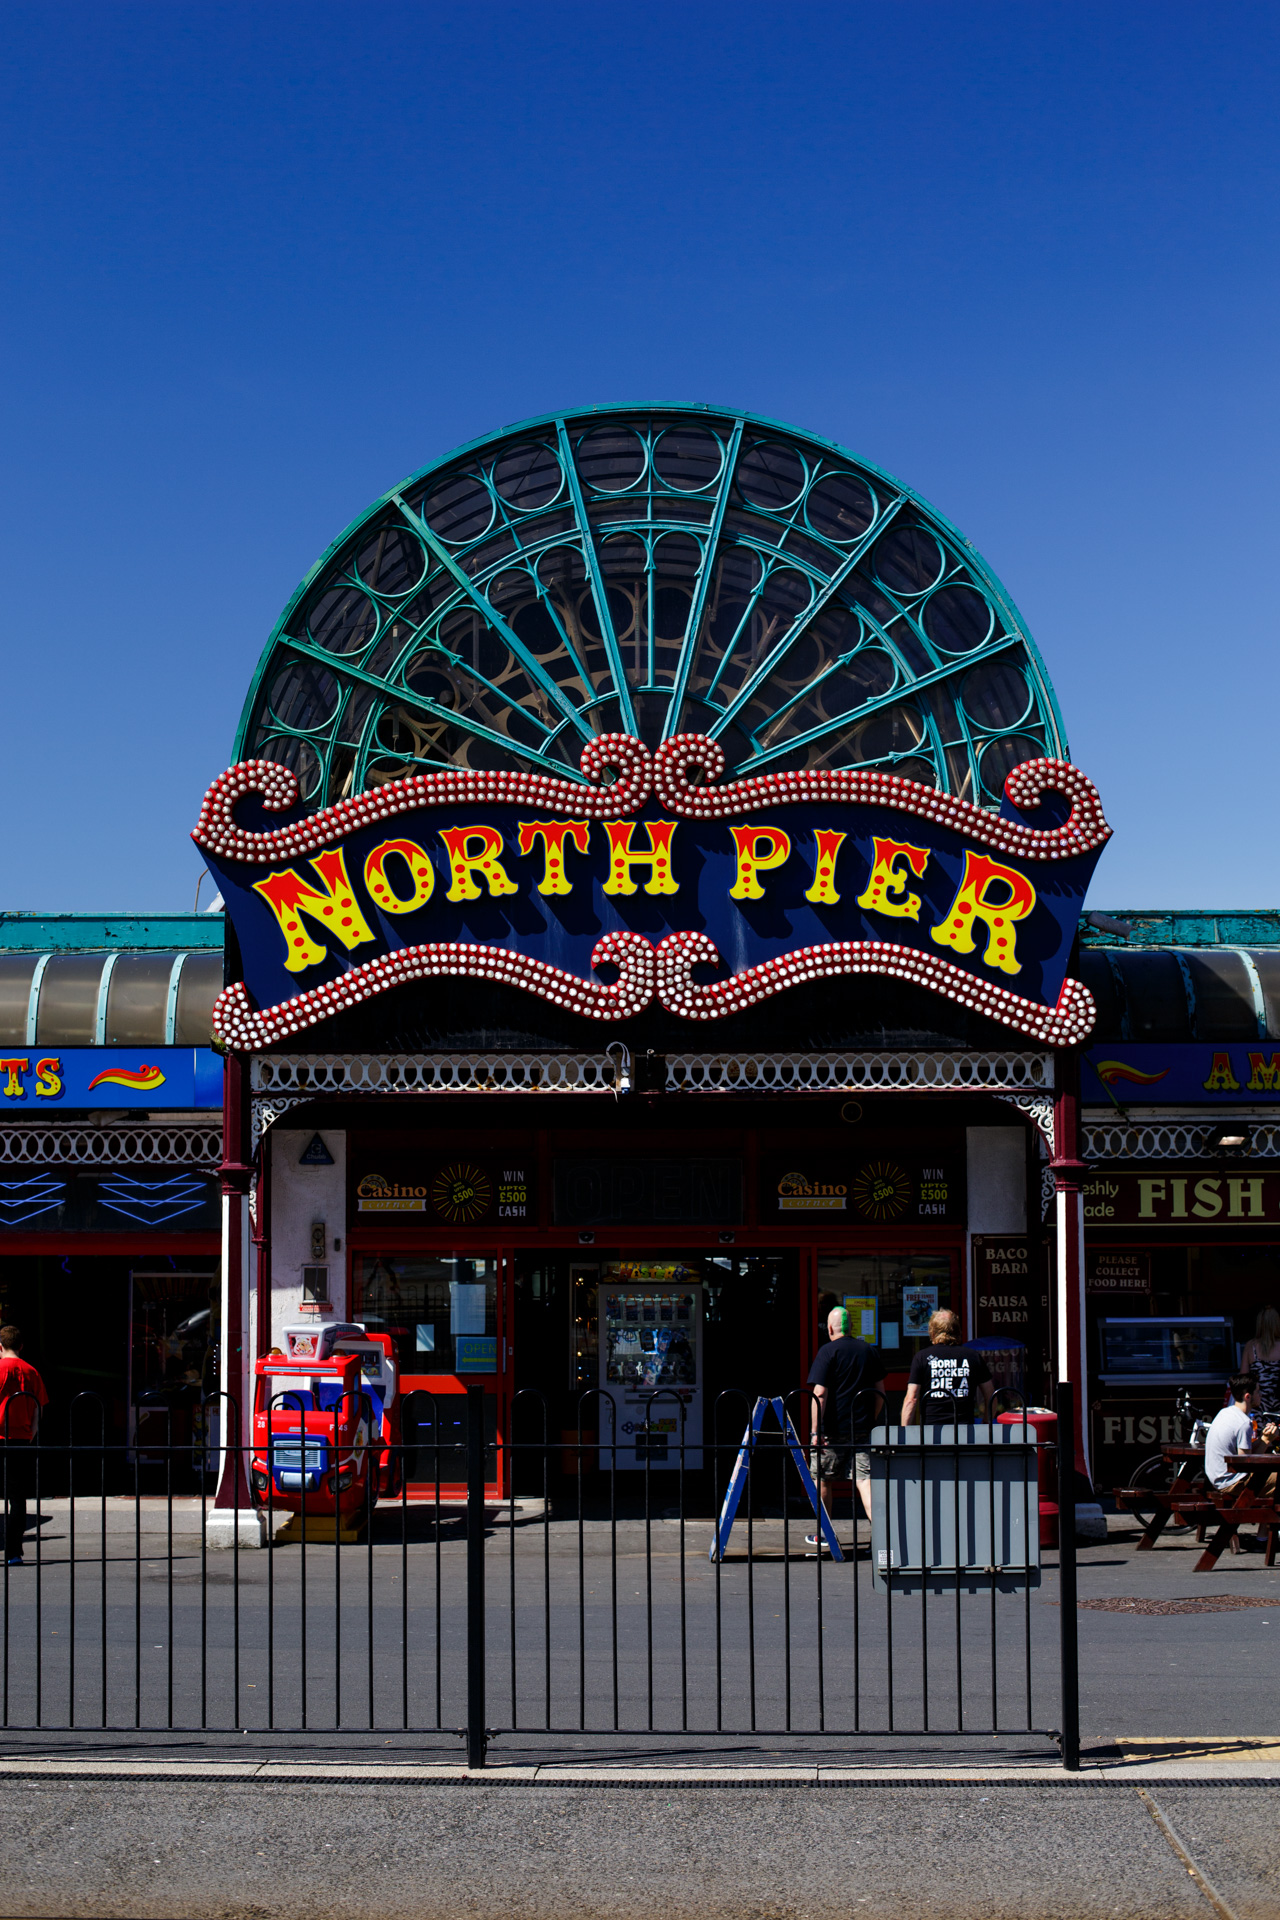 The North Pier entrance - taken with my DSLR.